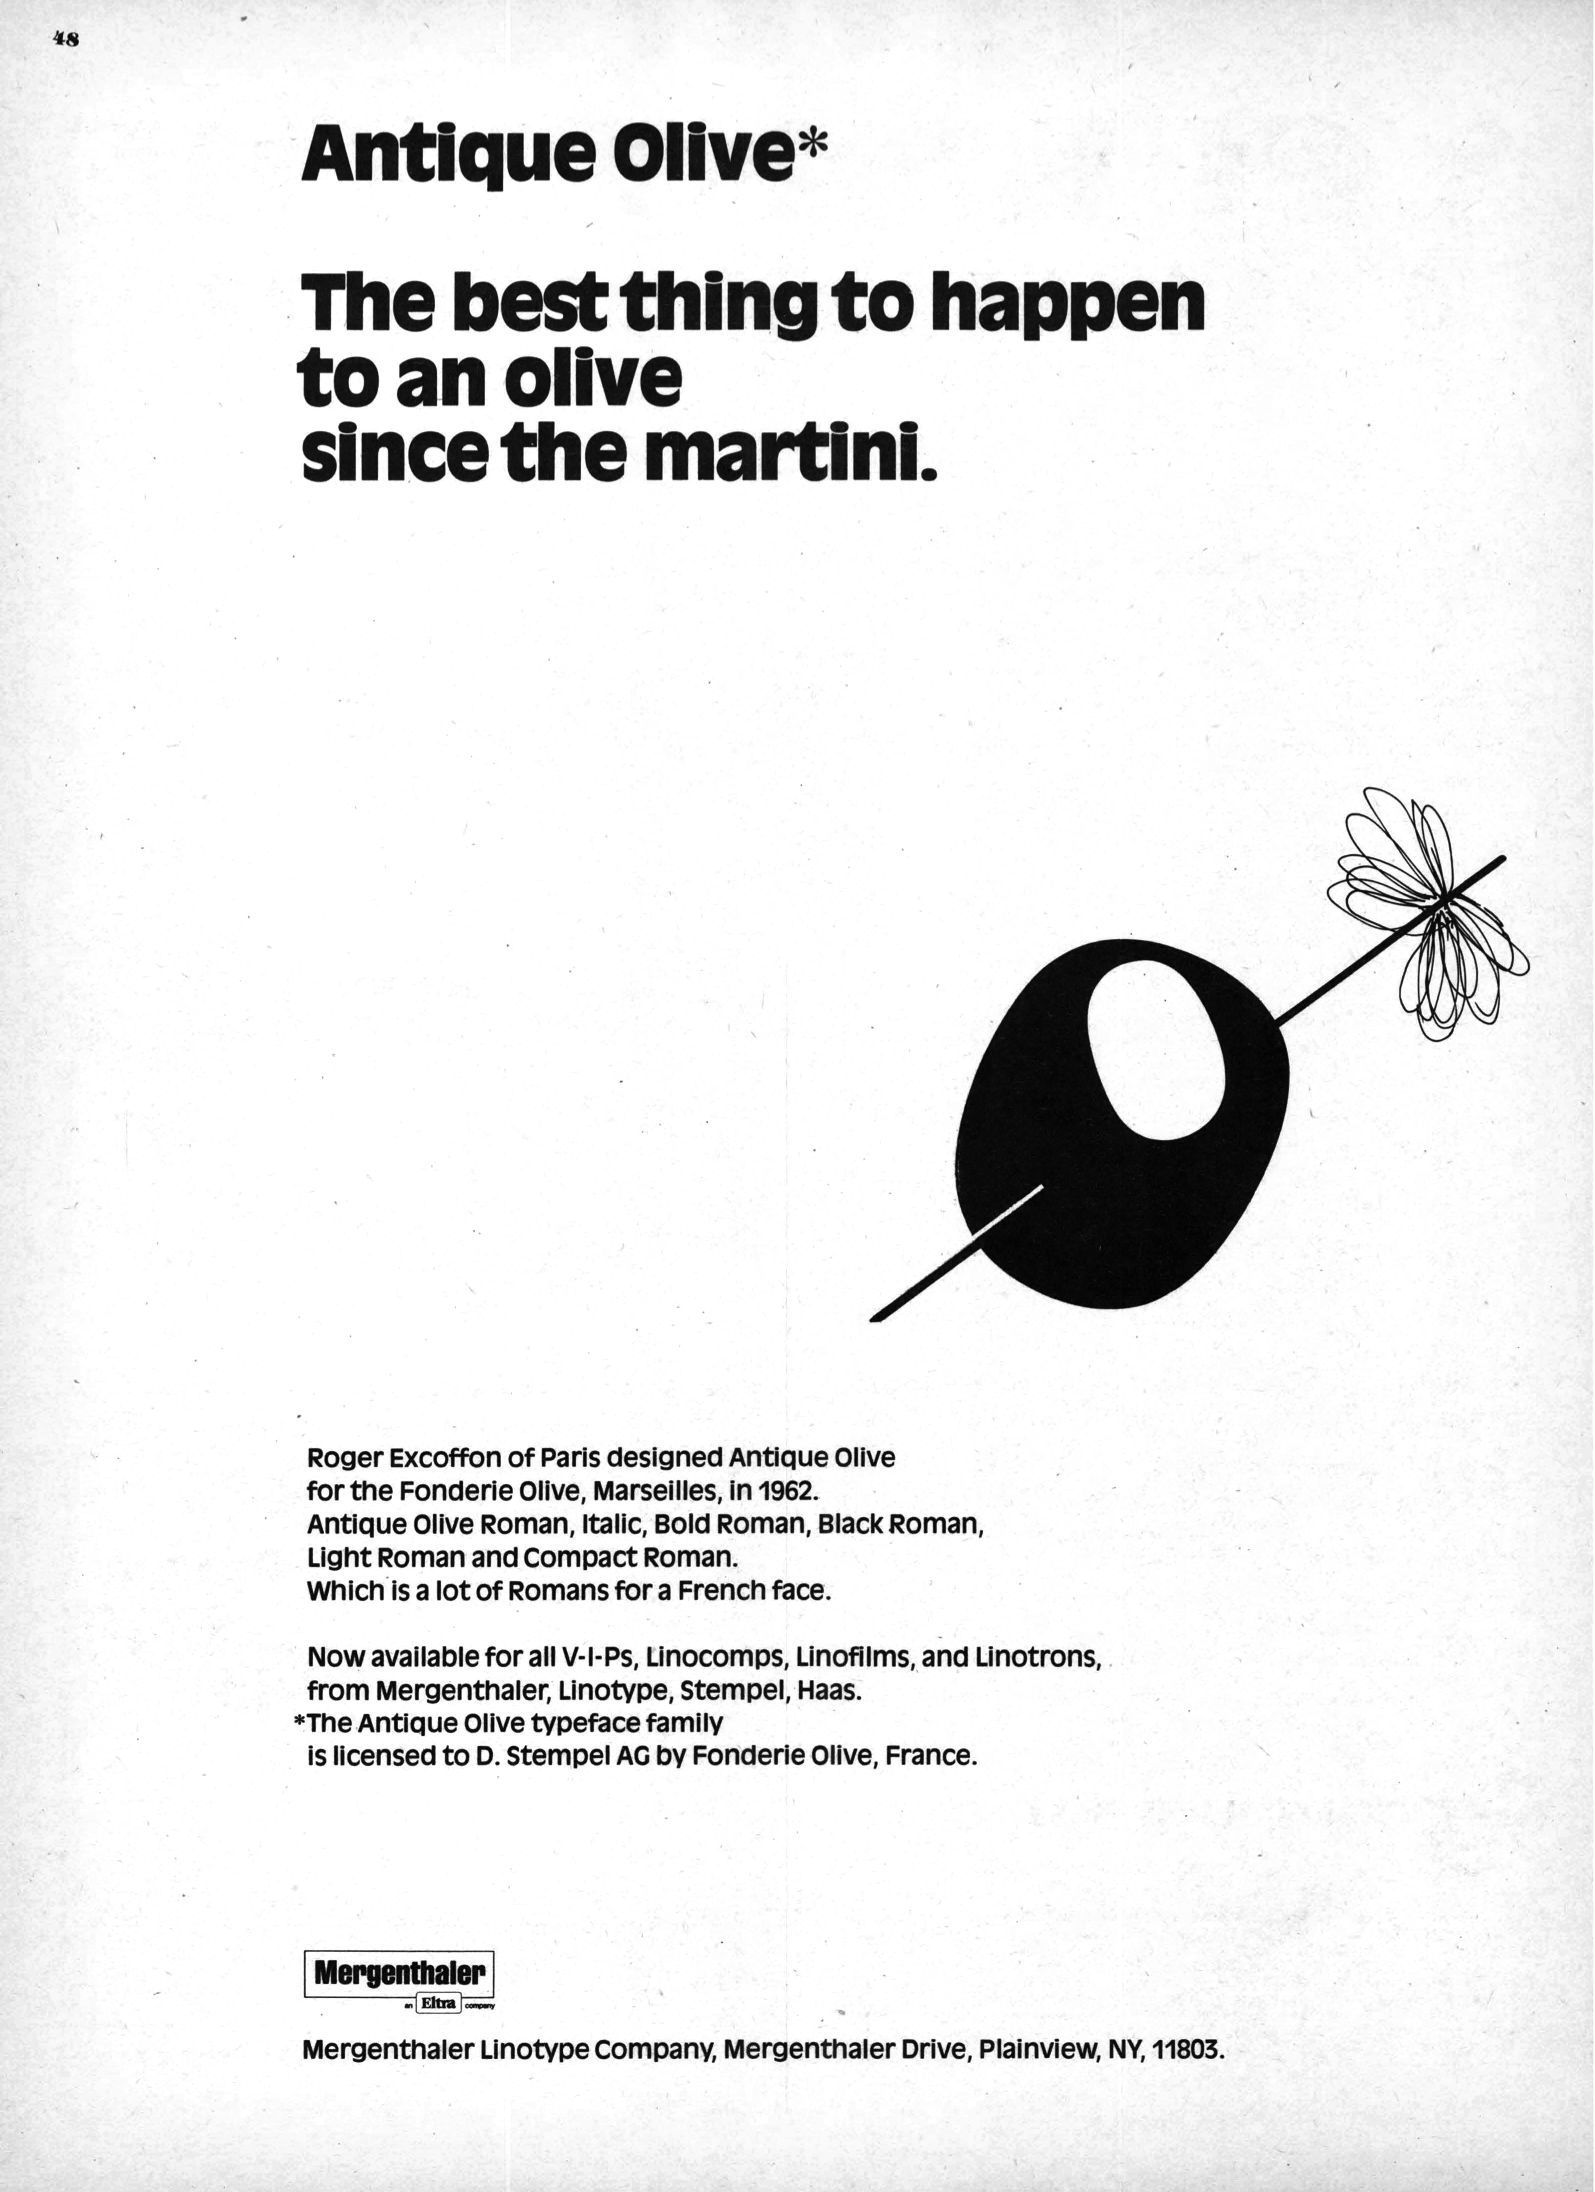 Mergenthaler Linotype ad for Antique Olive - Fonts In Use